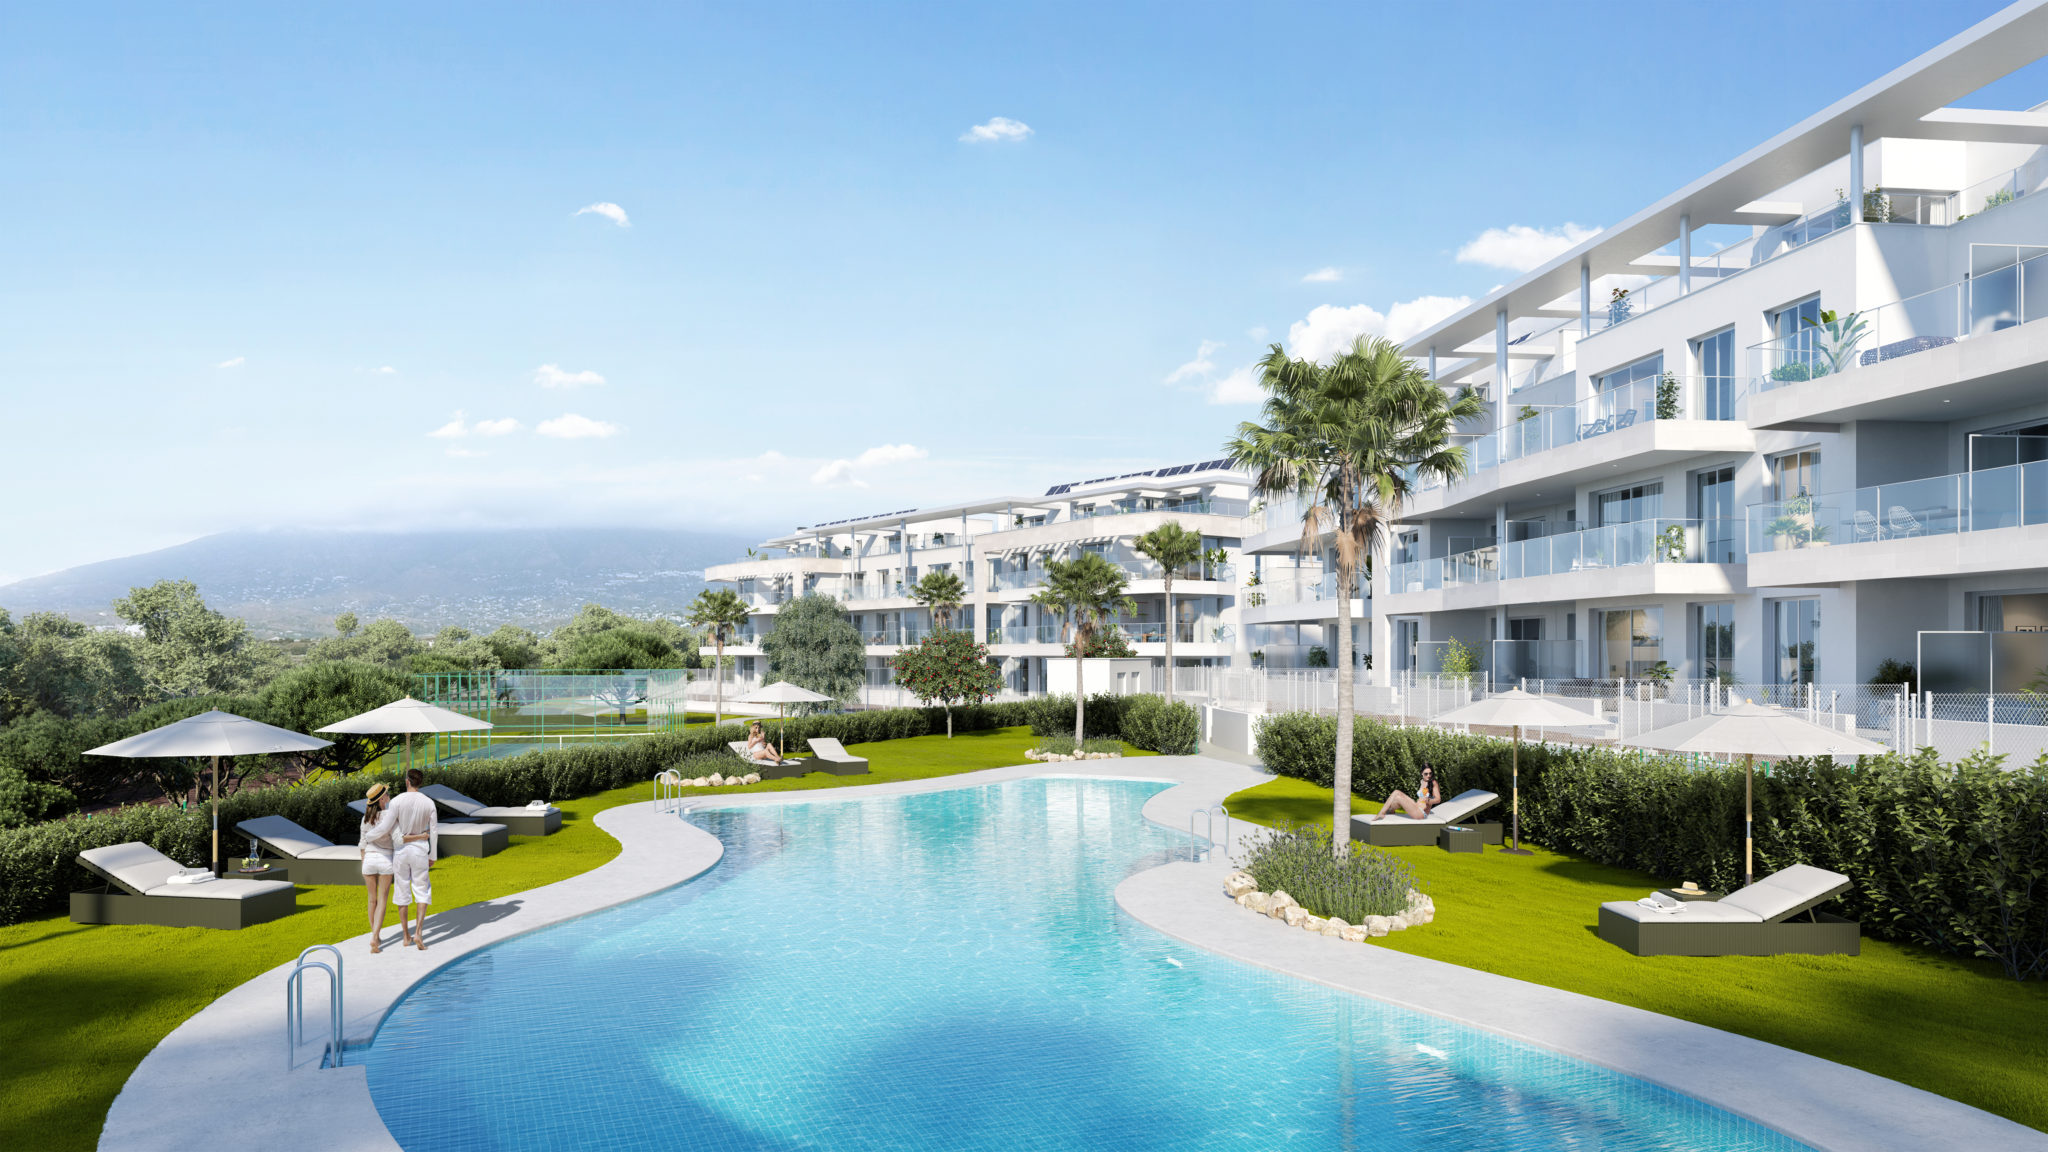 2, 3 & 4 bedroom homes with garage parking space in Mijas